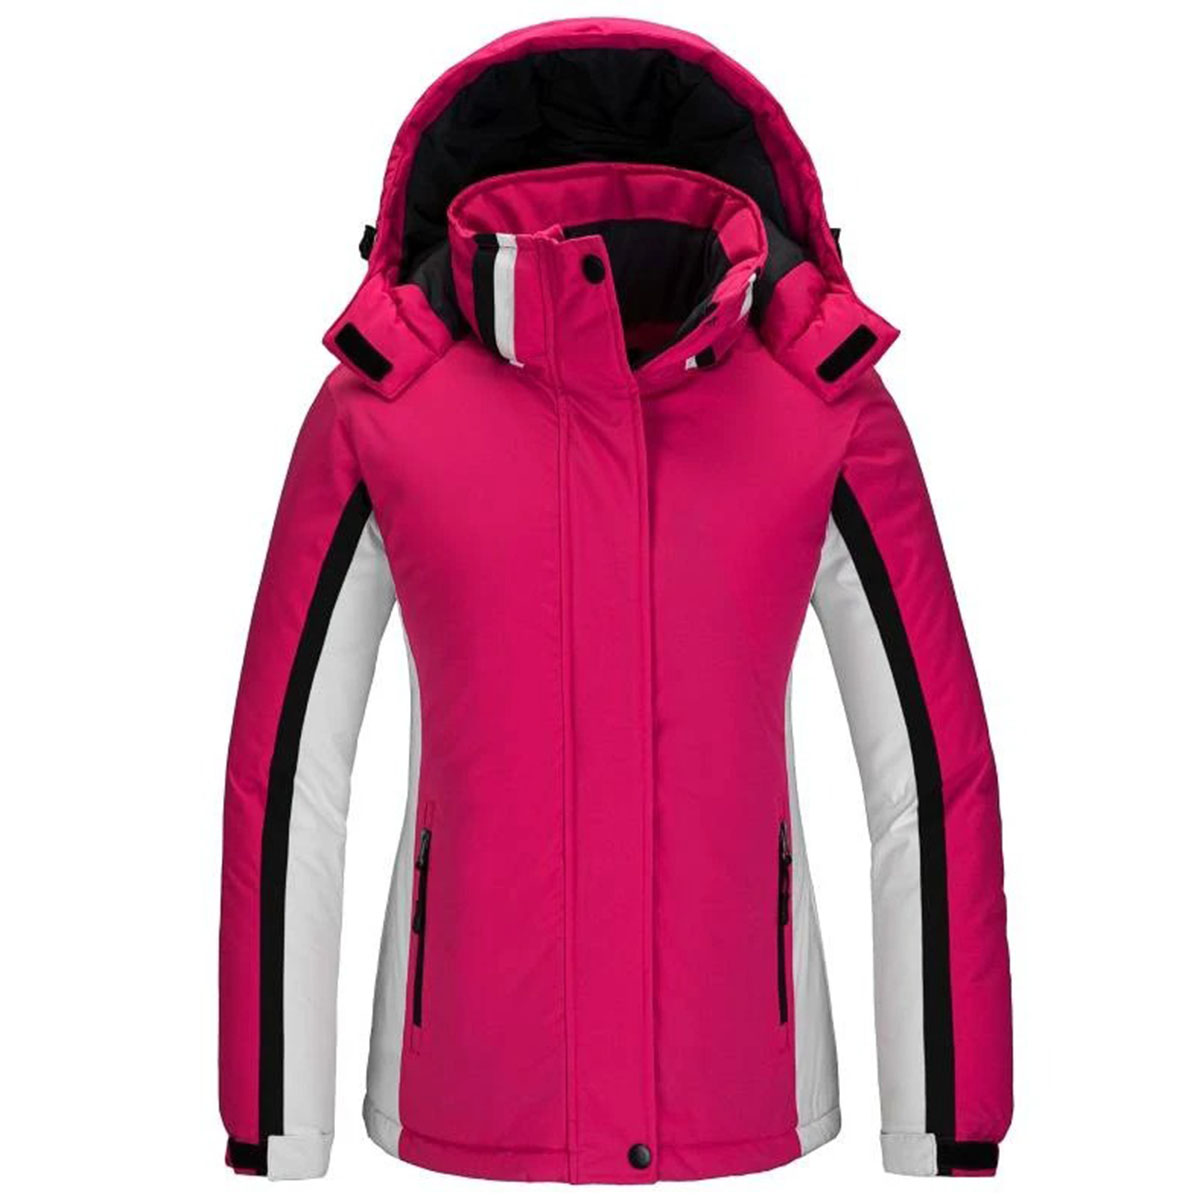 Women's Waterproof Ski Jacket Winter Snow Coat Snowboarding Jackets